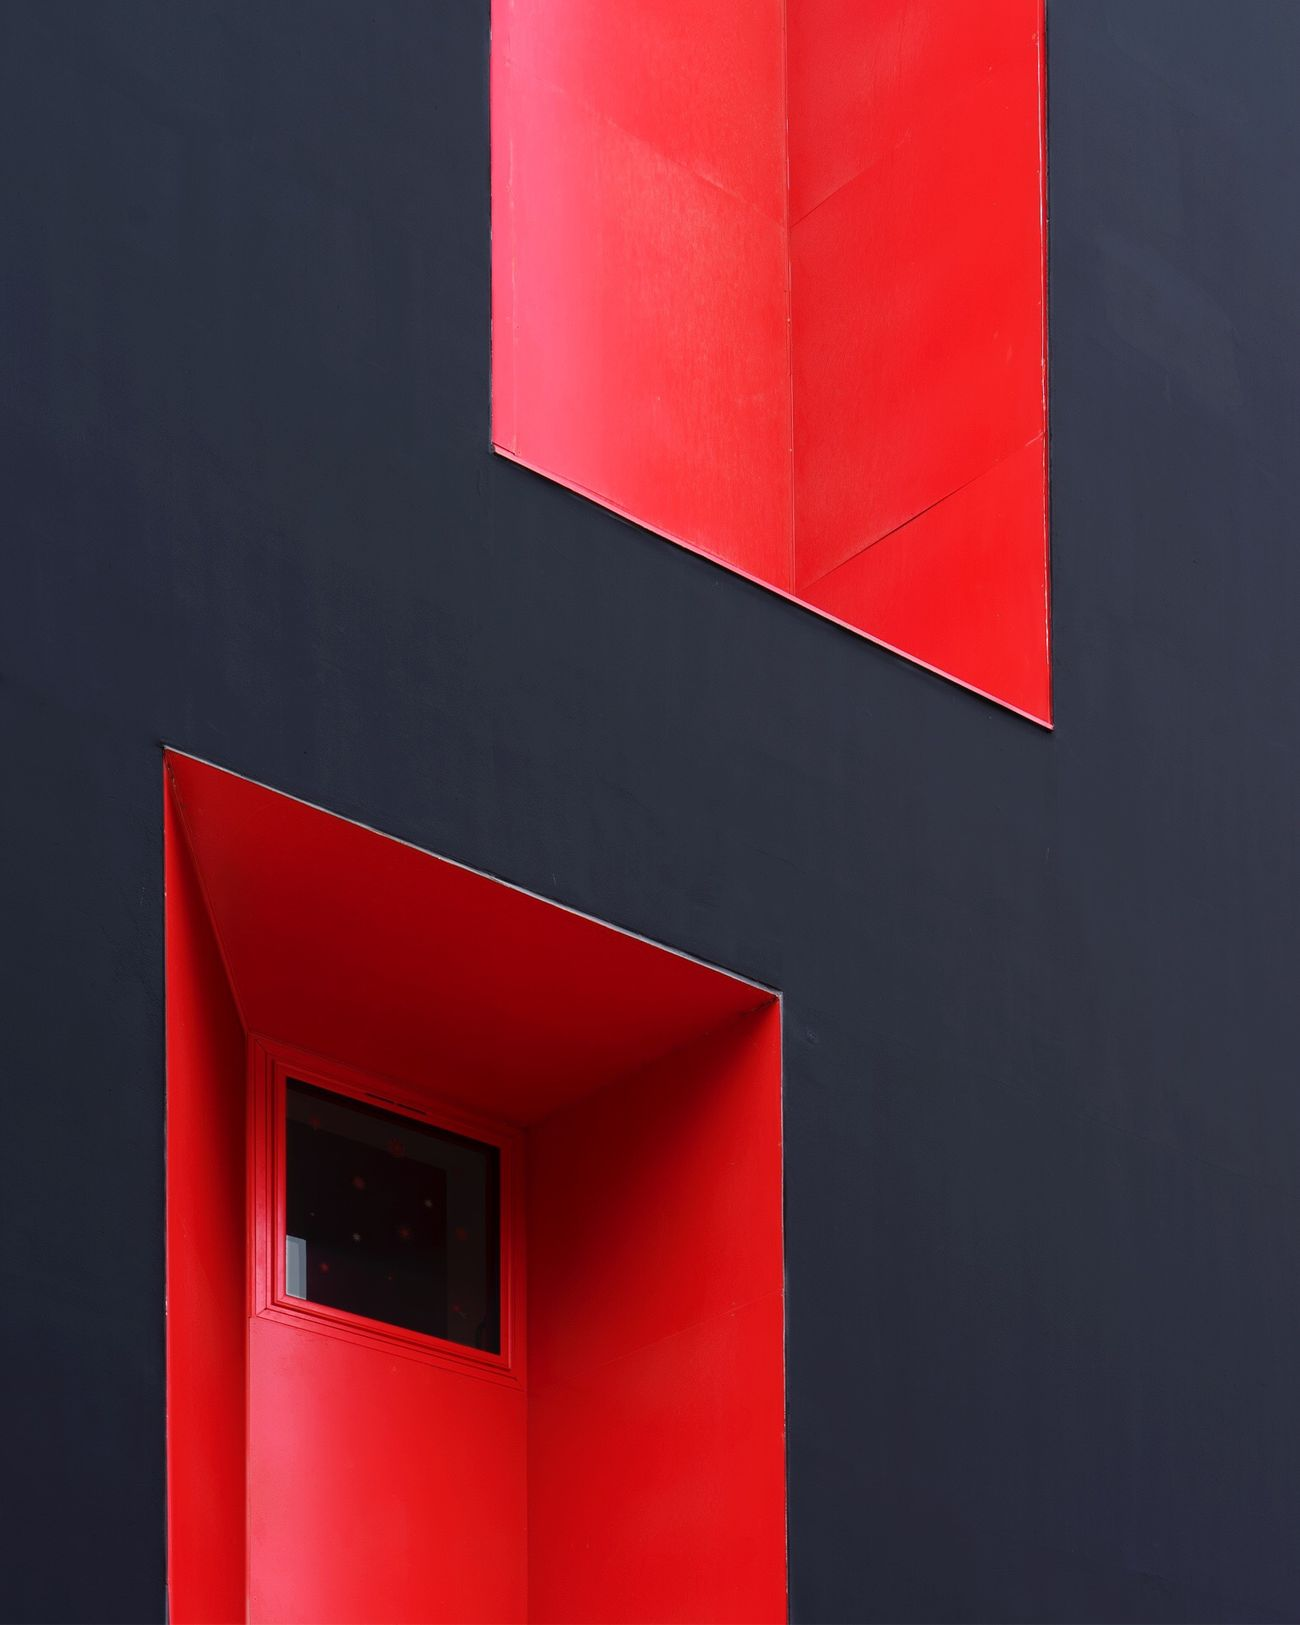 Red Built Structure Building Exterior Architectural Detail EyeEmBestPics Architecture Façade The Architect - 2017 EyeEm Awards EyeEm Best Edits Lines, Shapes And Curves TheWeekOnEyeEM EyeEm Best Shots Lines And Shapes Geometric Shape Window Black Wall